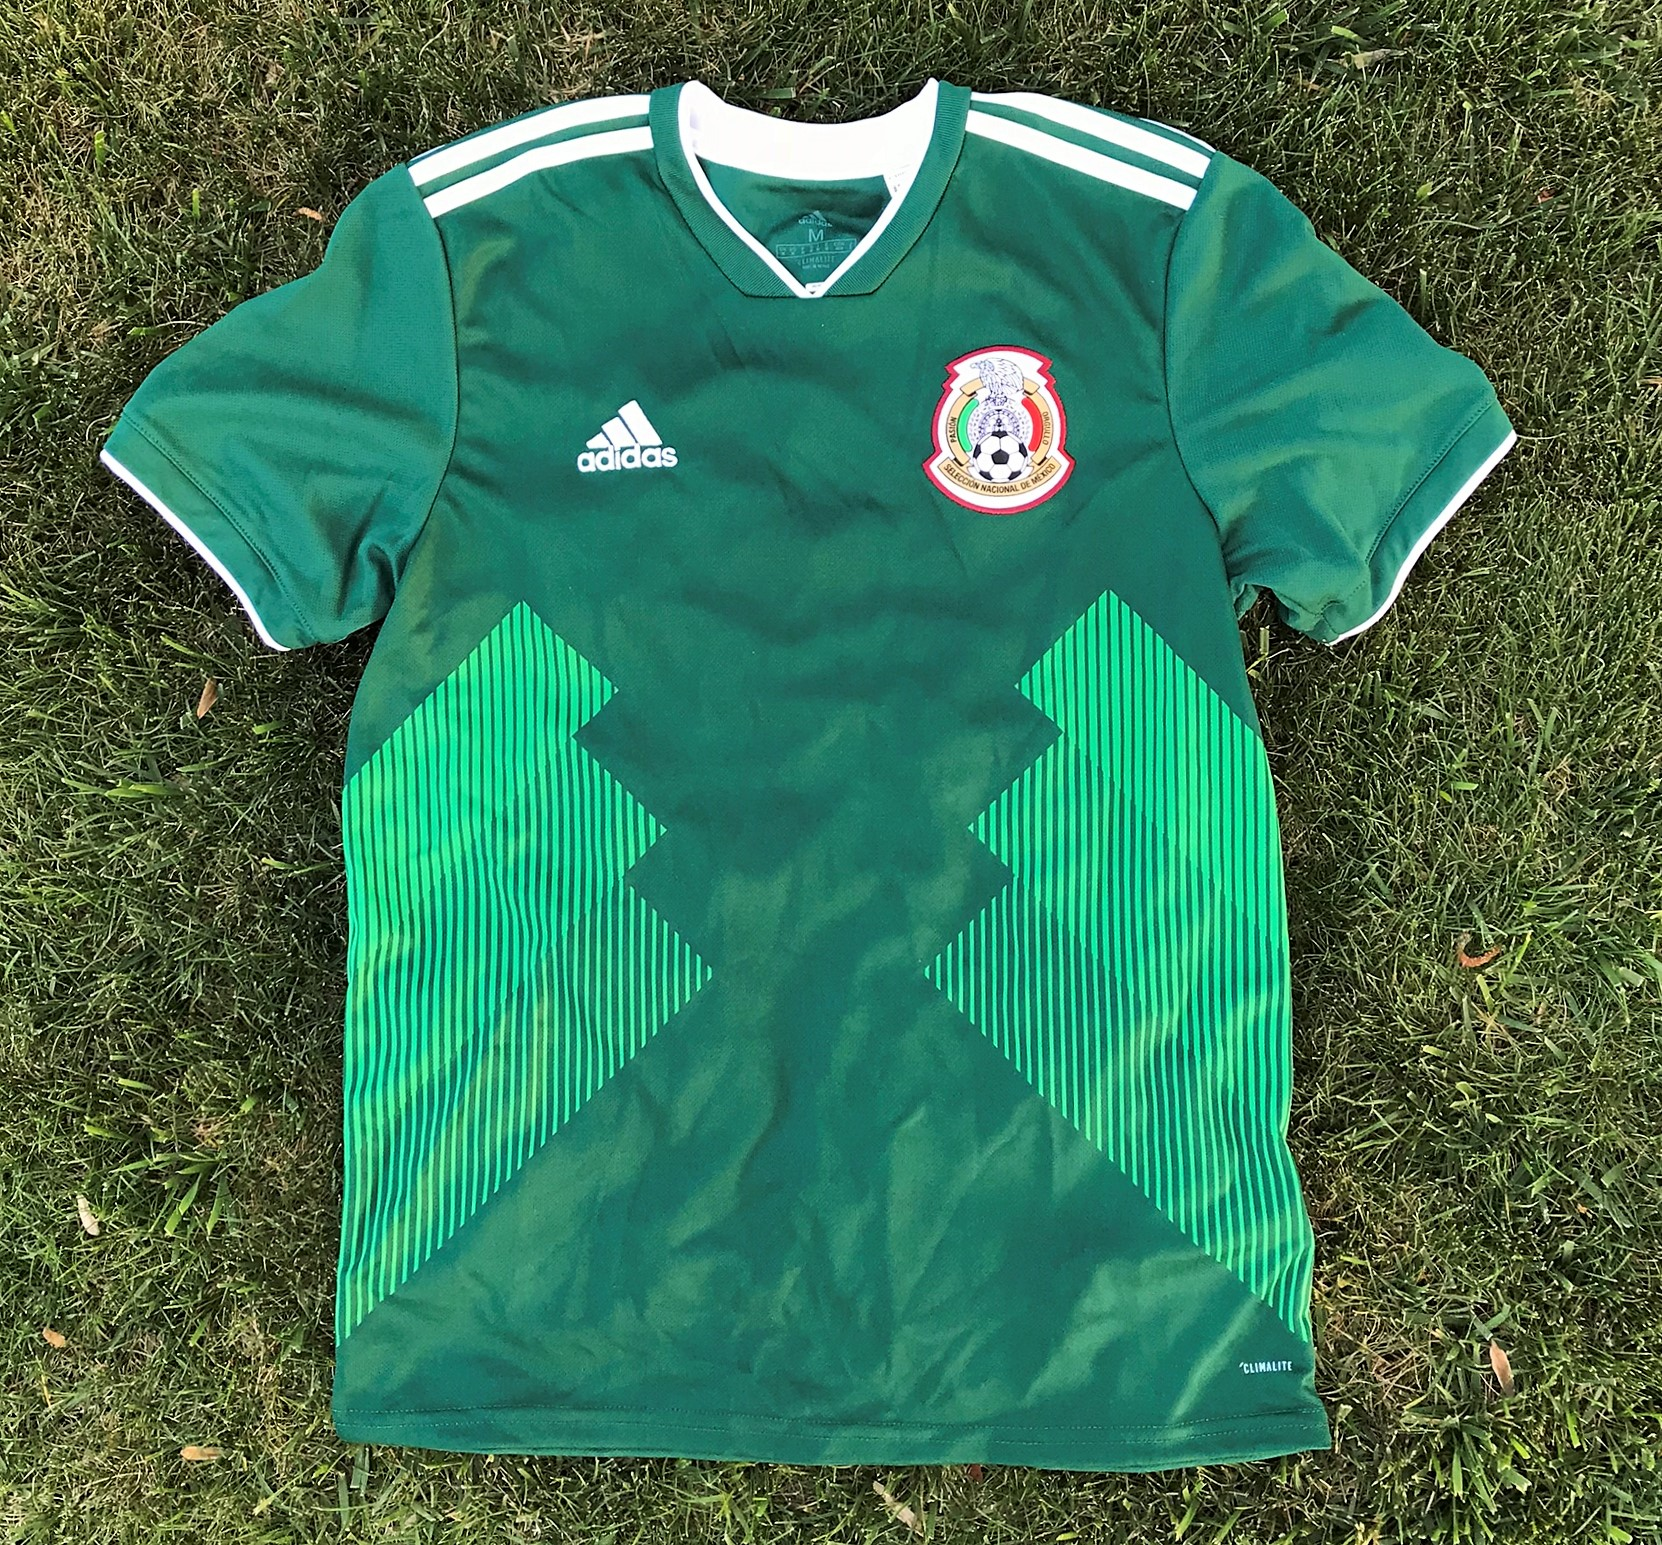 adidas Mexico Jersey 2018 - Soccer Cleats 101